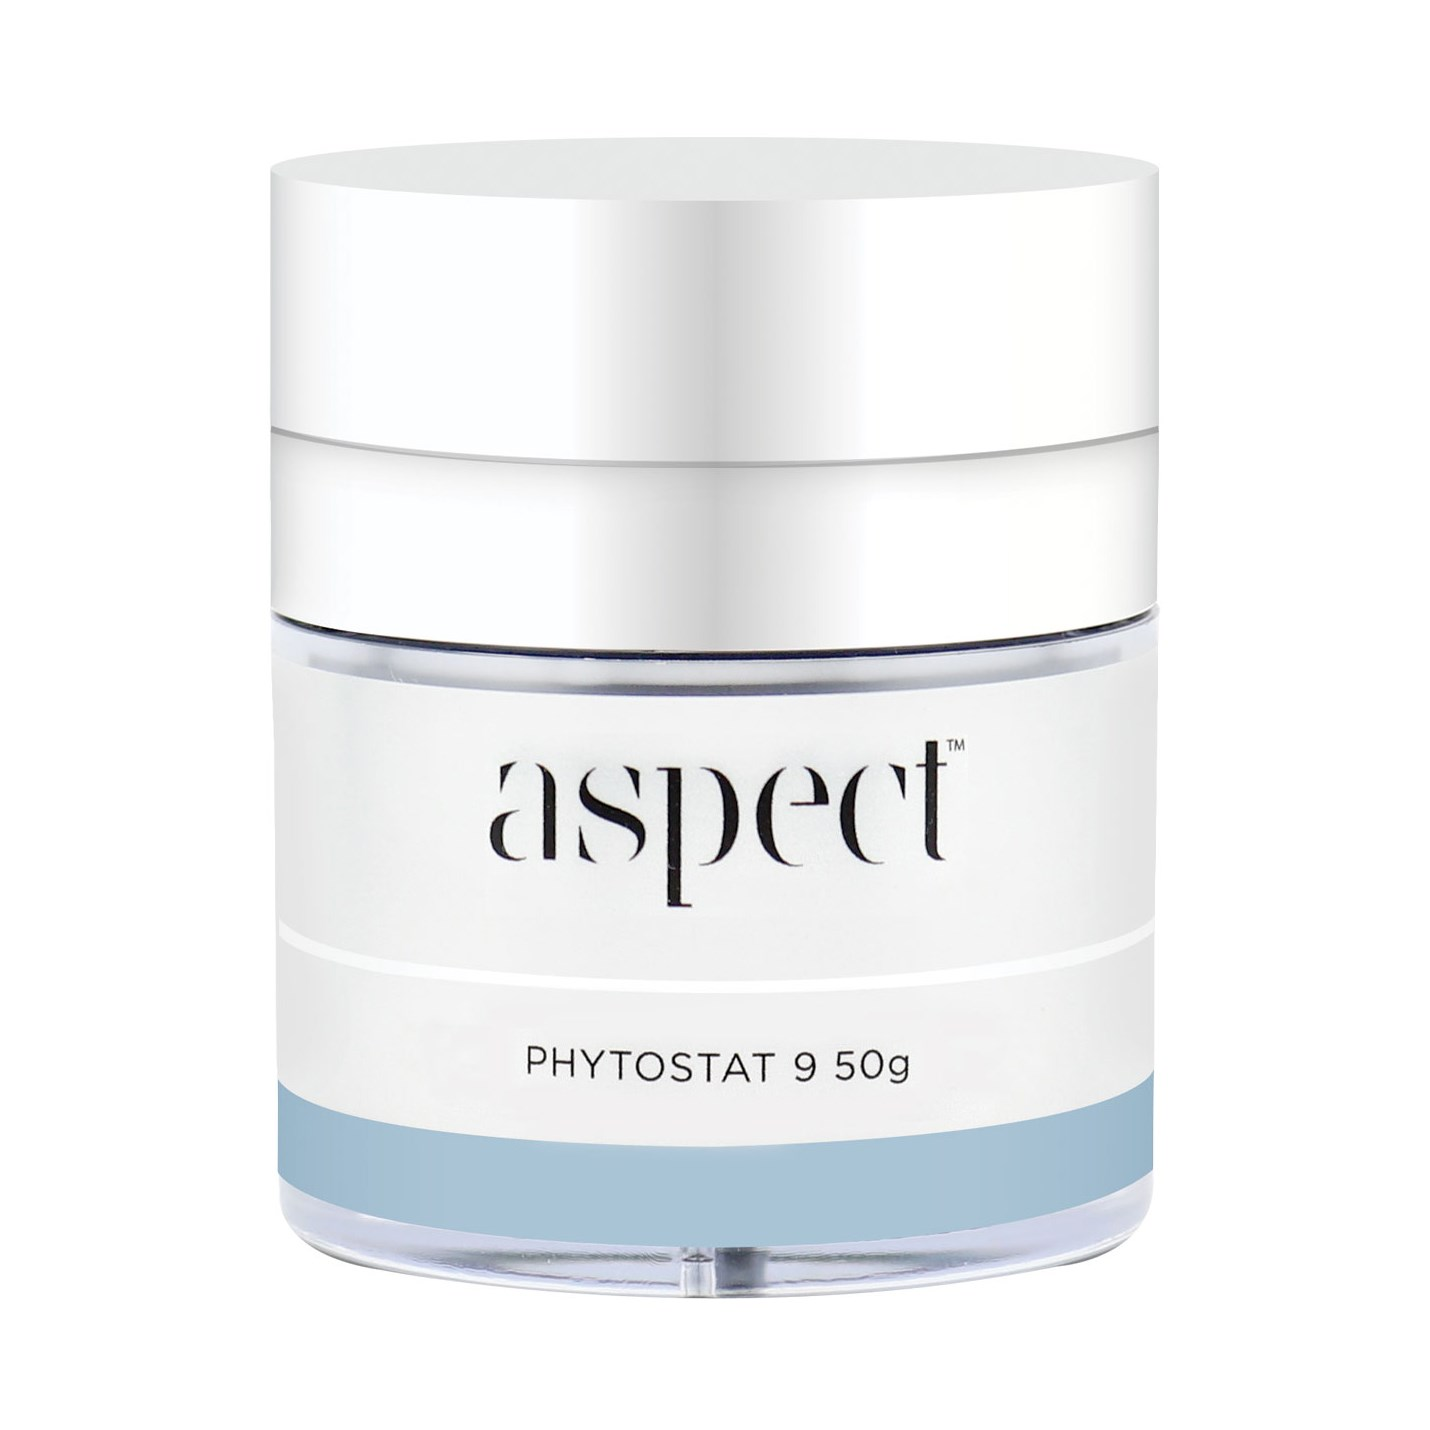 Aspect Phytostat 9 - with Airless Pump 50g